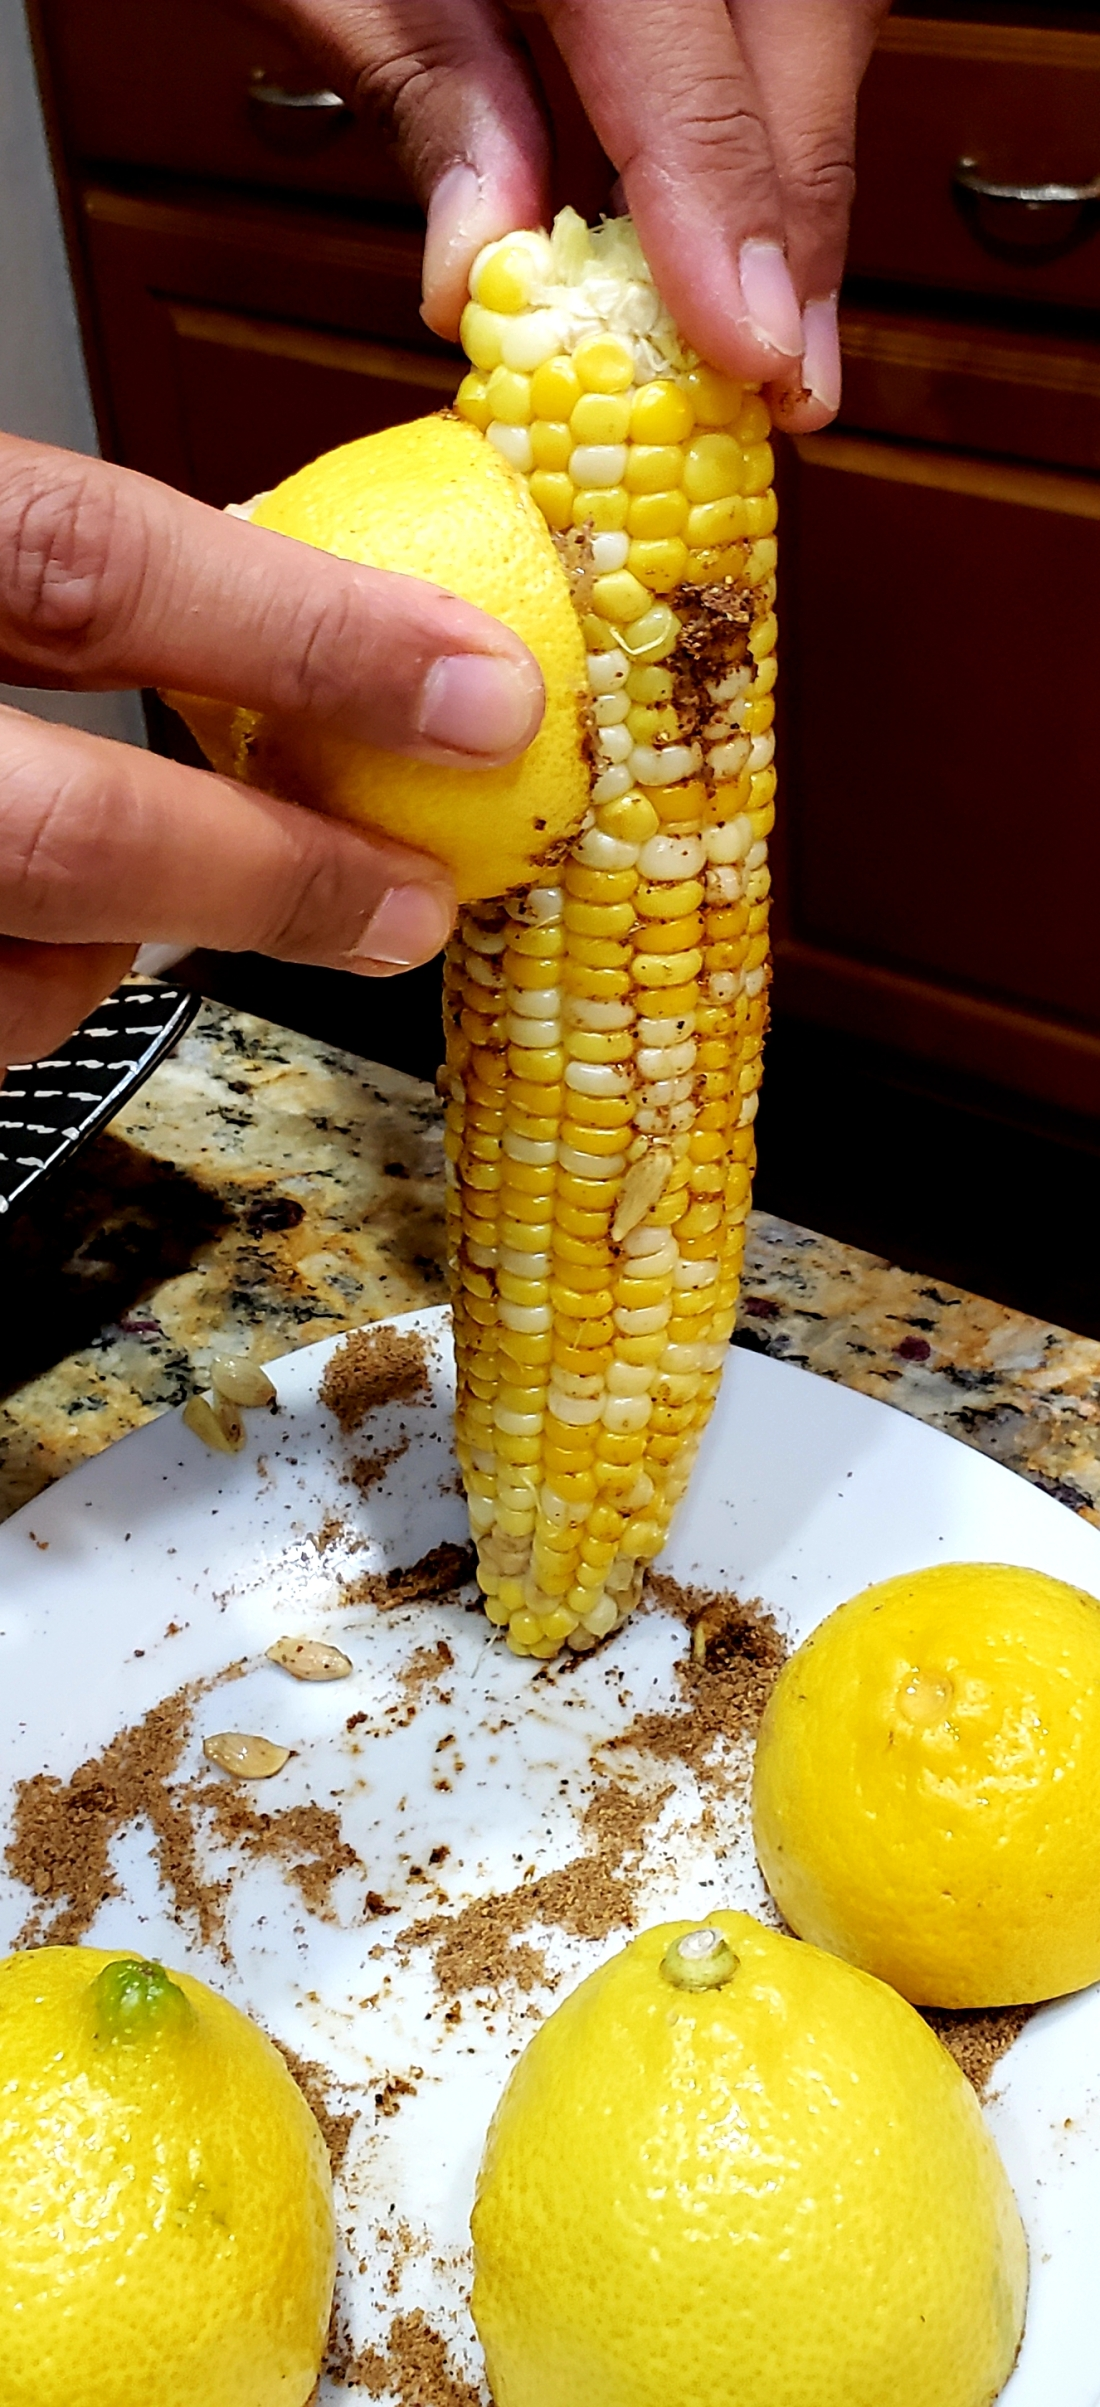 Rubbing the spiced lemon onto the corn